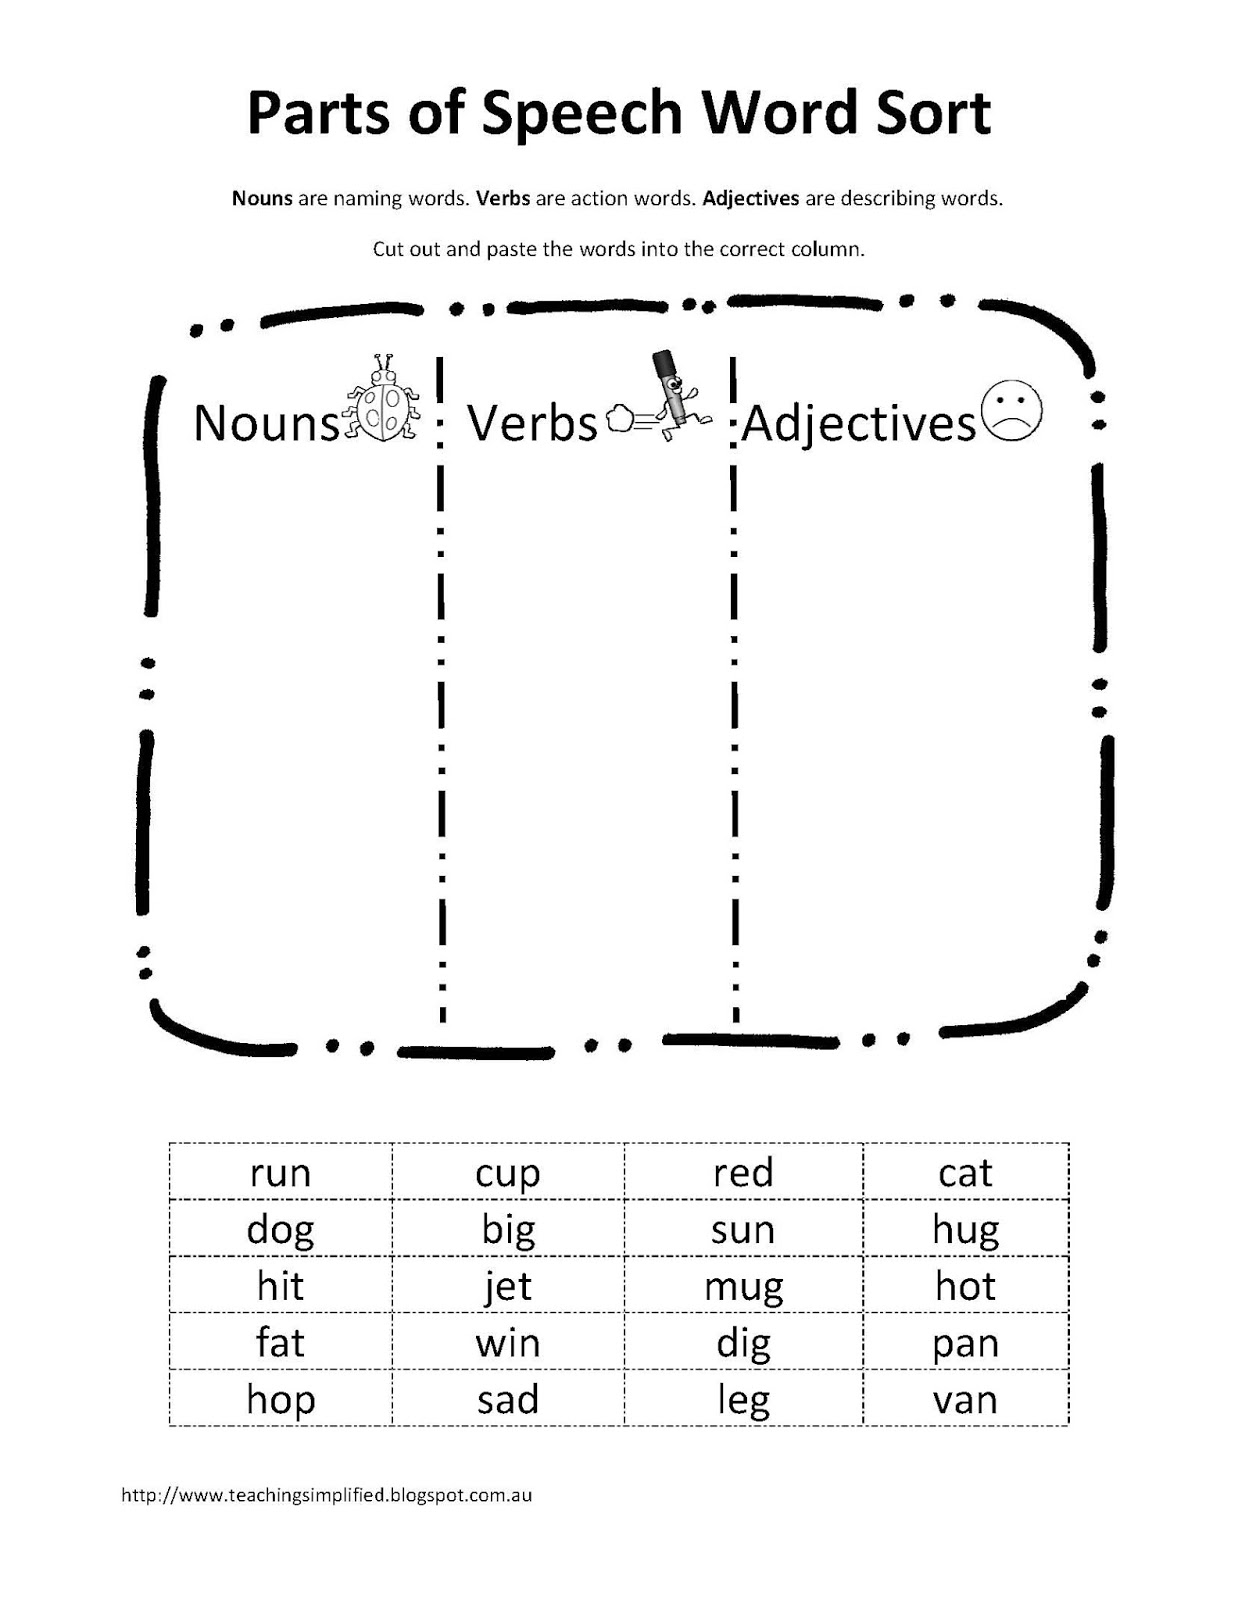 Teaching Simplified Free Download Parts Of Speech Word Sort